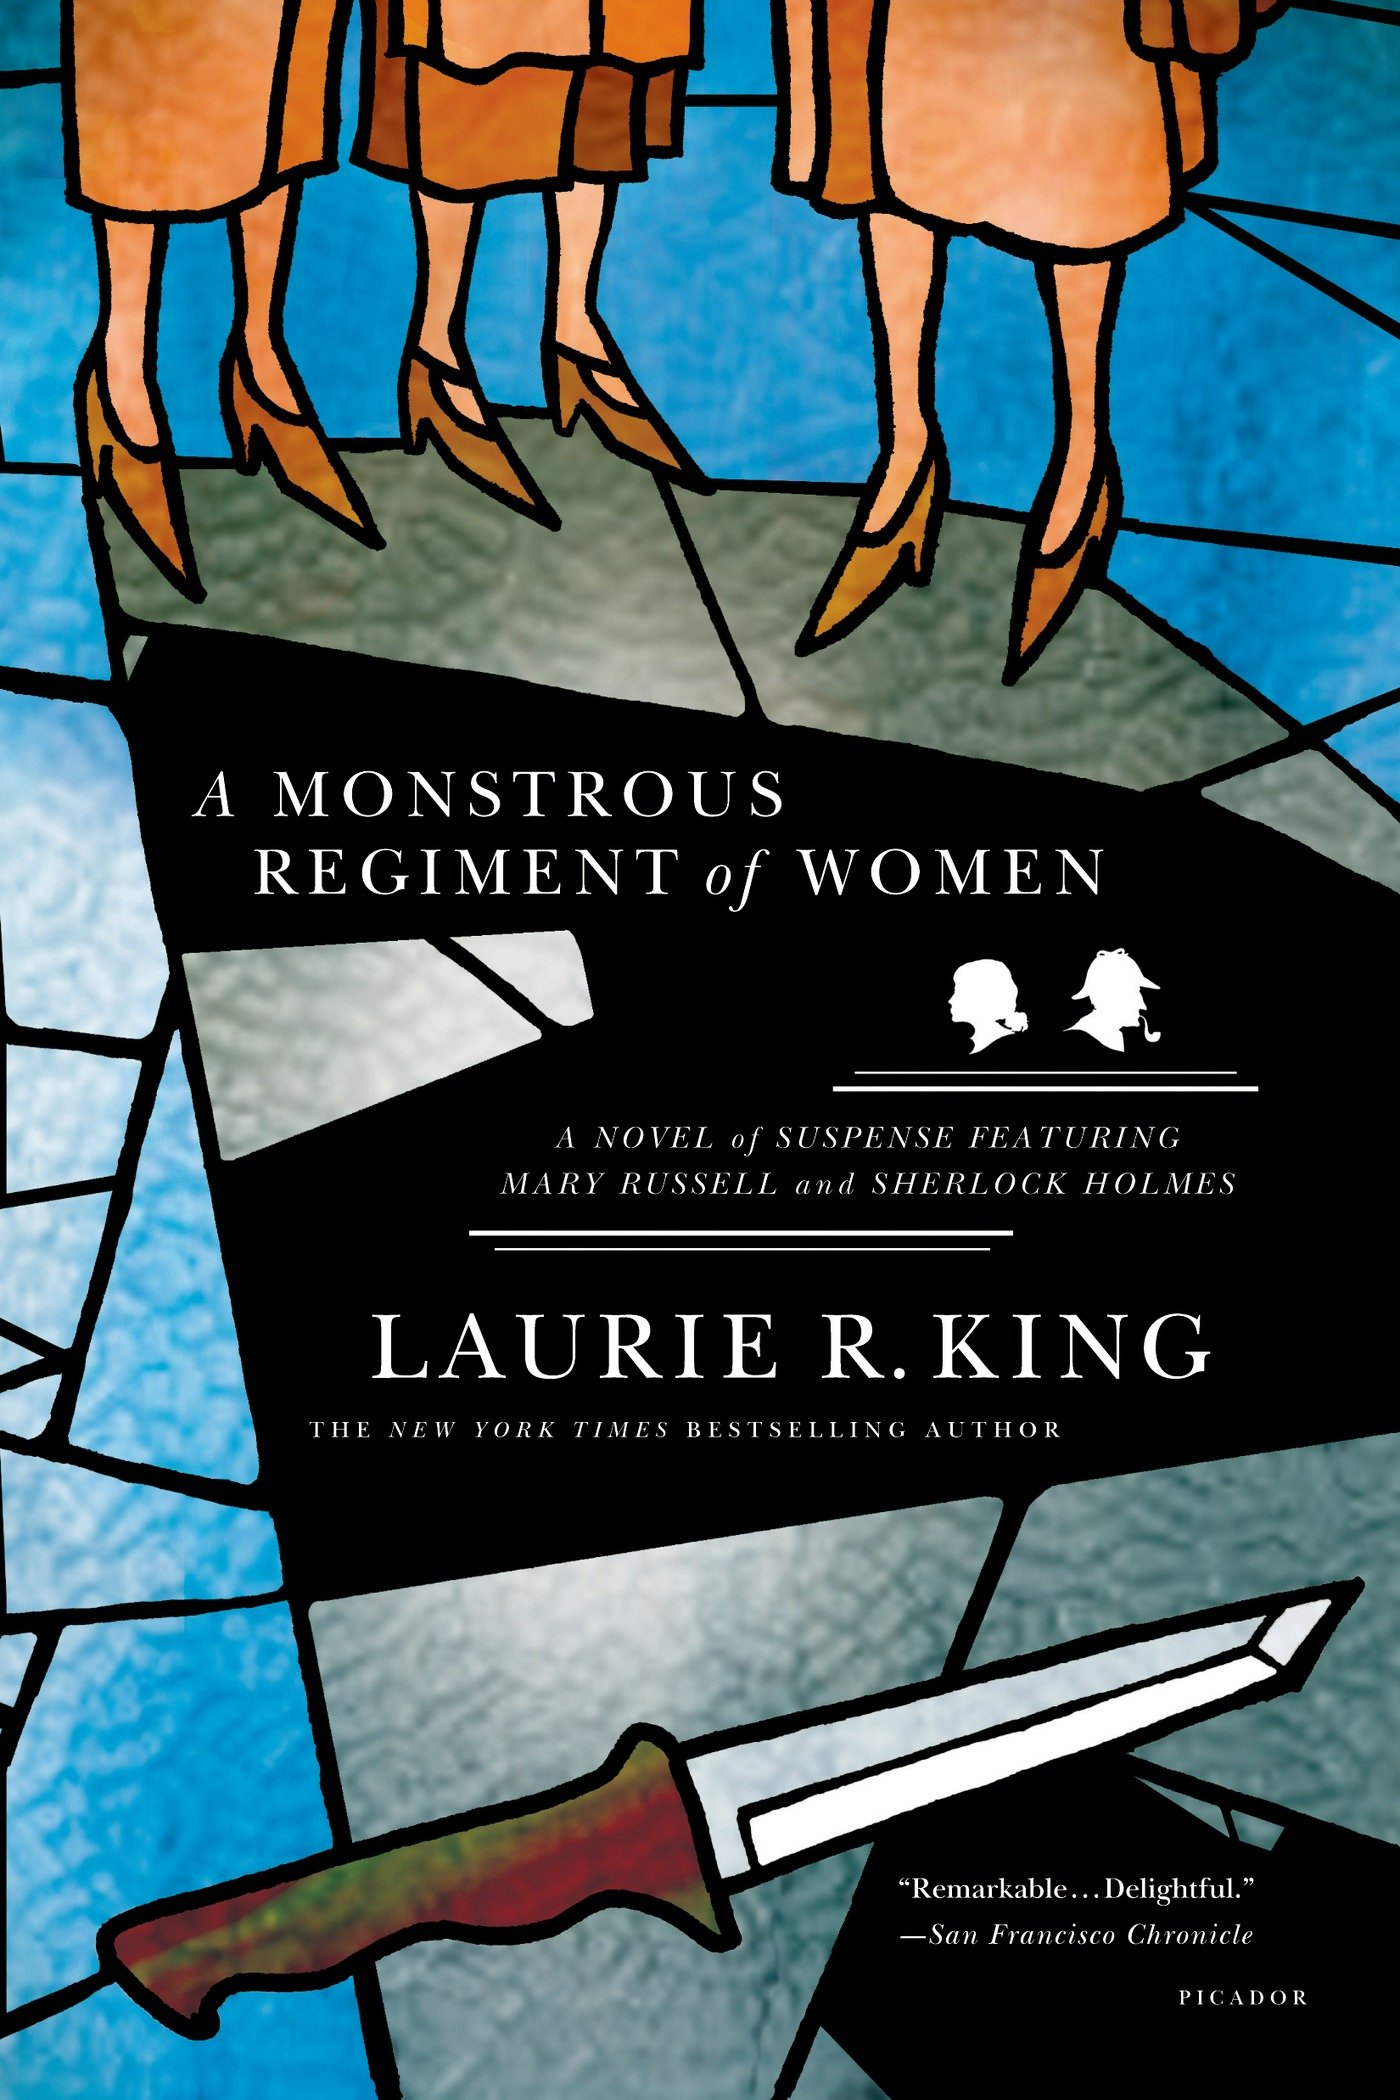 A Monstrous Regiment Of Women A Novel Of Suspense Featuring Mary Russell And Sherlock Holmes A Mary Russell Mystery 2 King Laurie R 9780312427375 Amazon Com Books